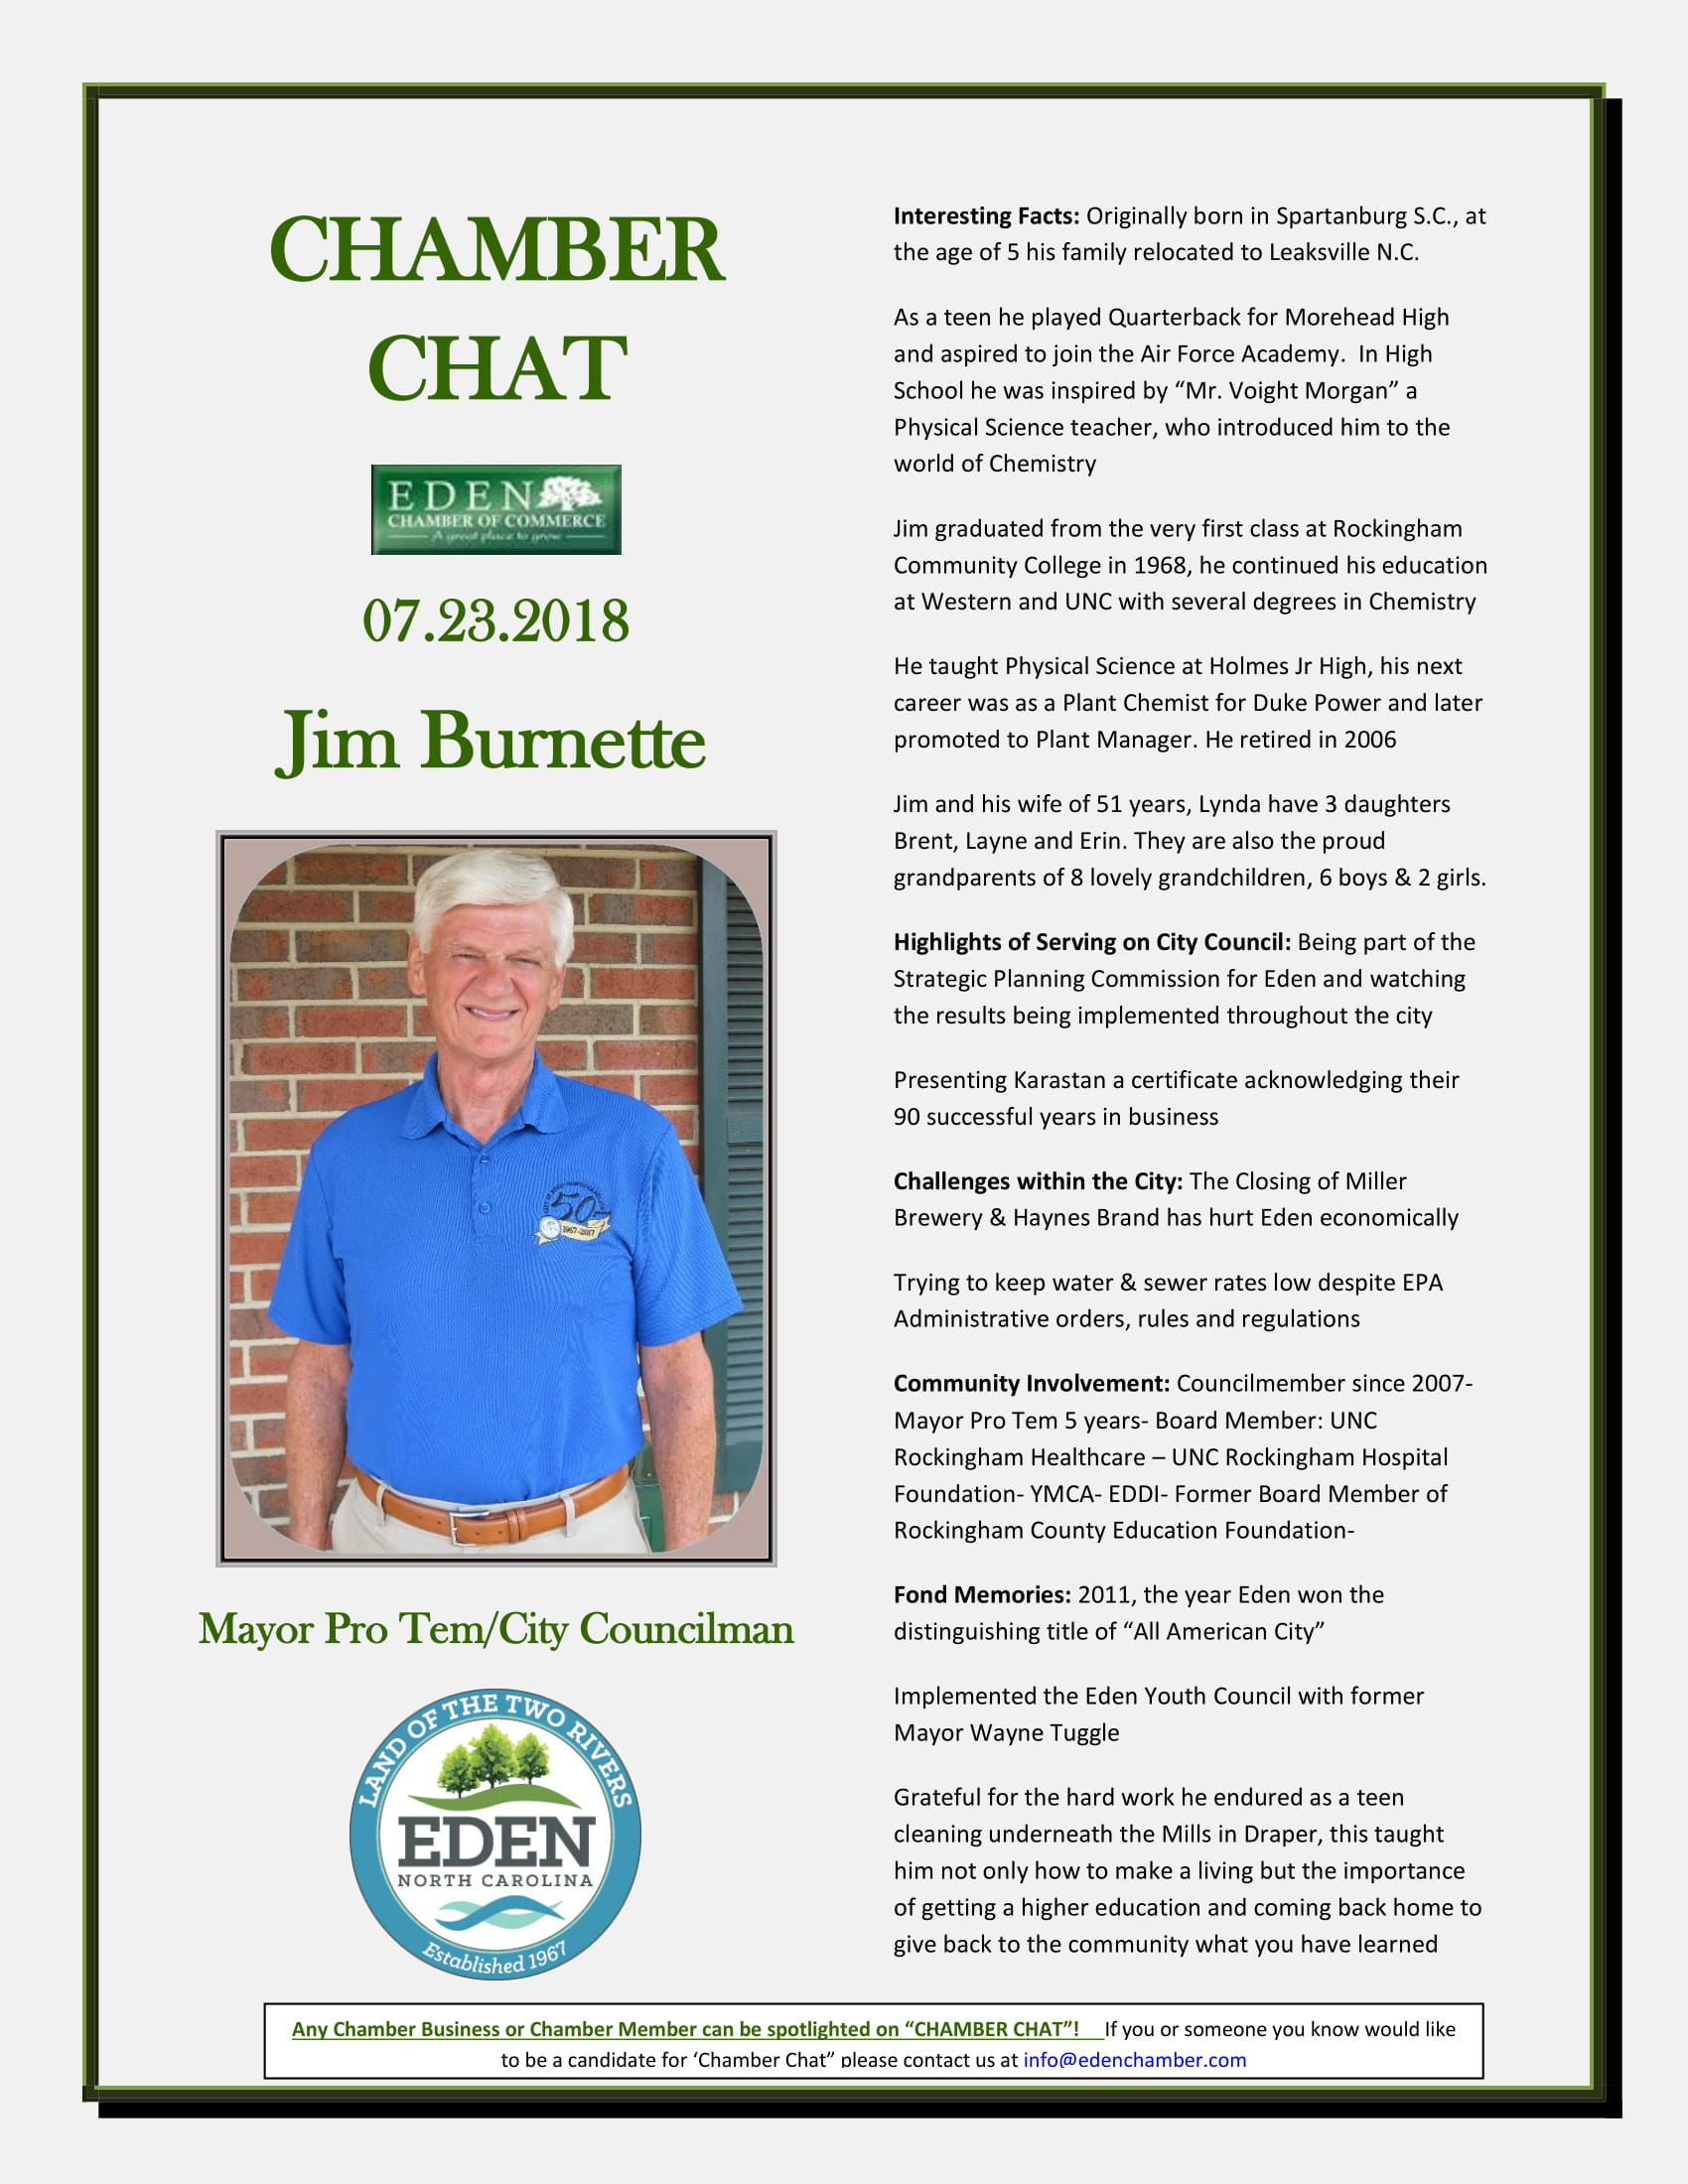 CHAMBER-CHAT--Jim-Burnette-07.23.18-1